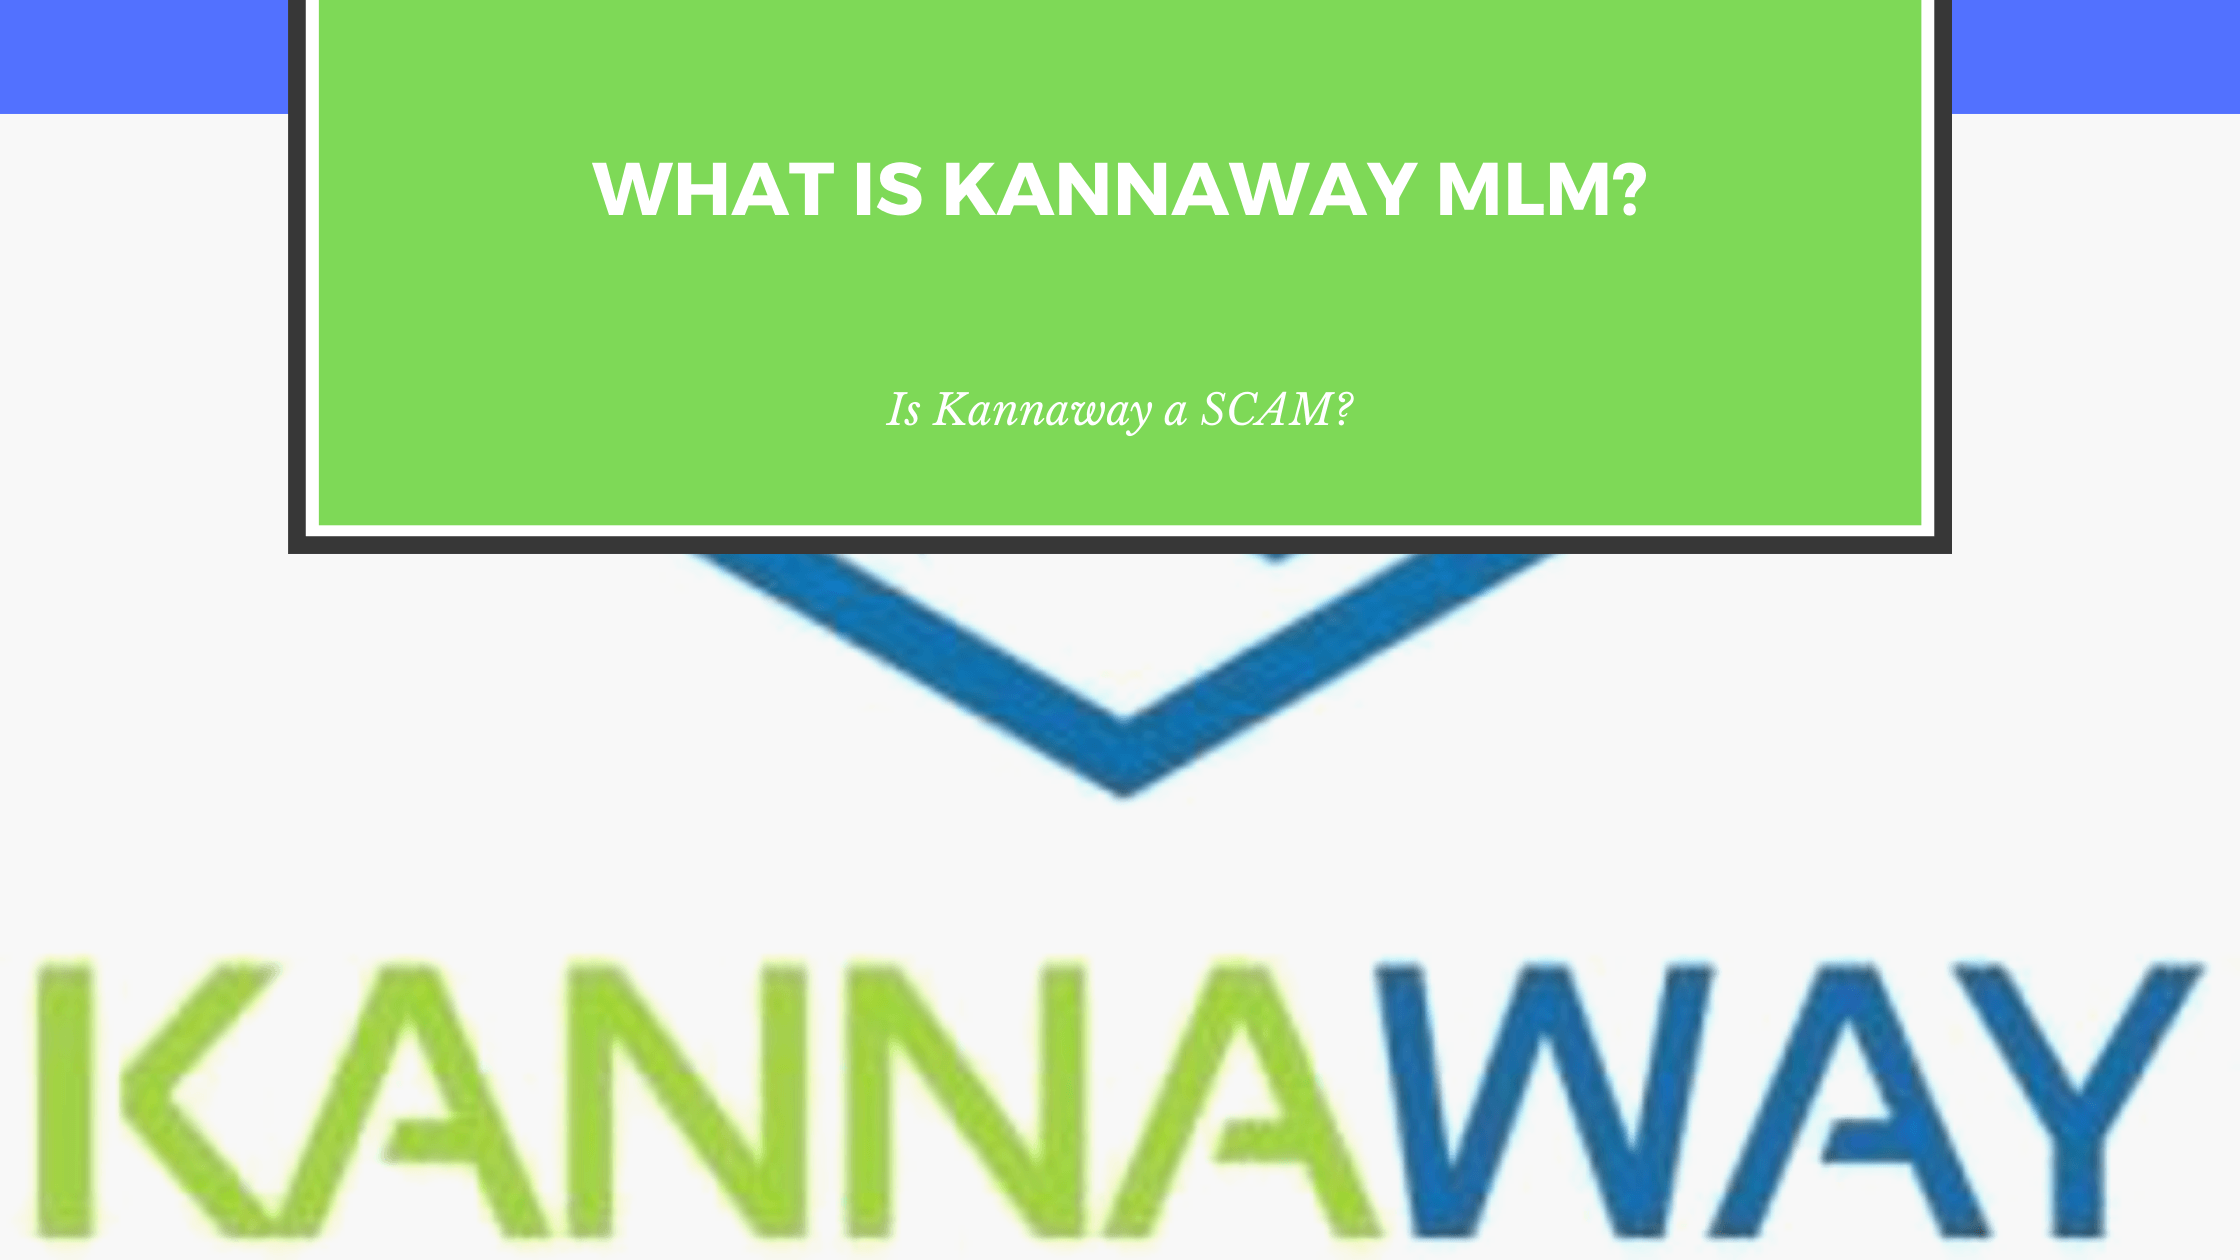 What is Kannaway MLM